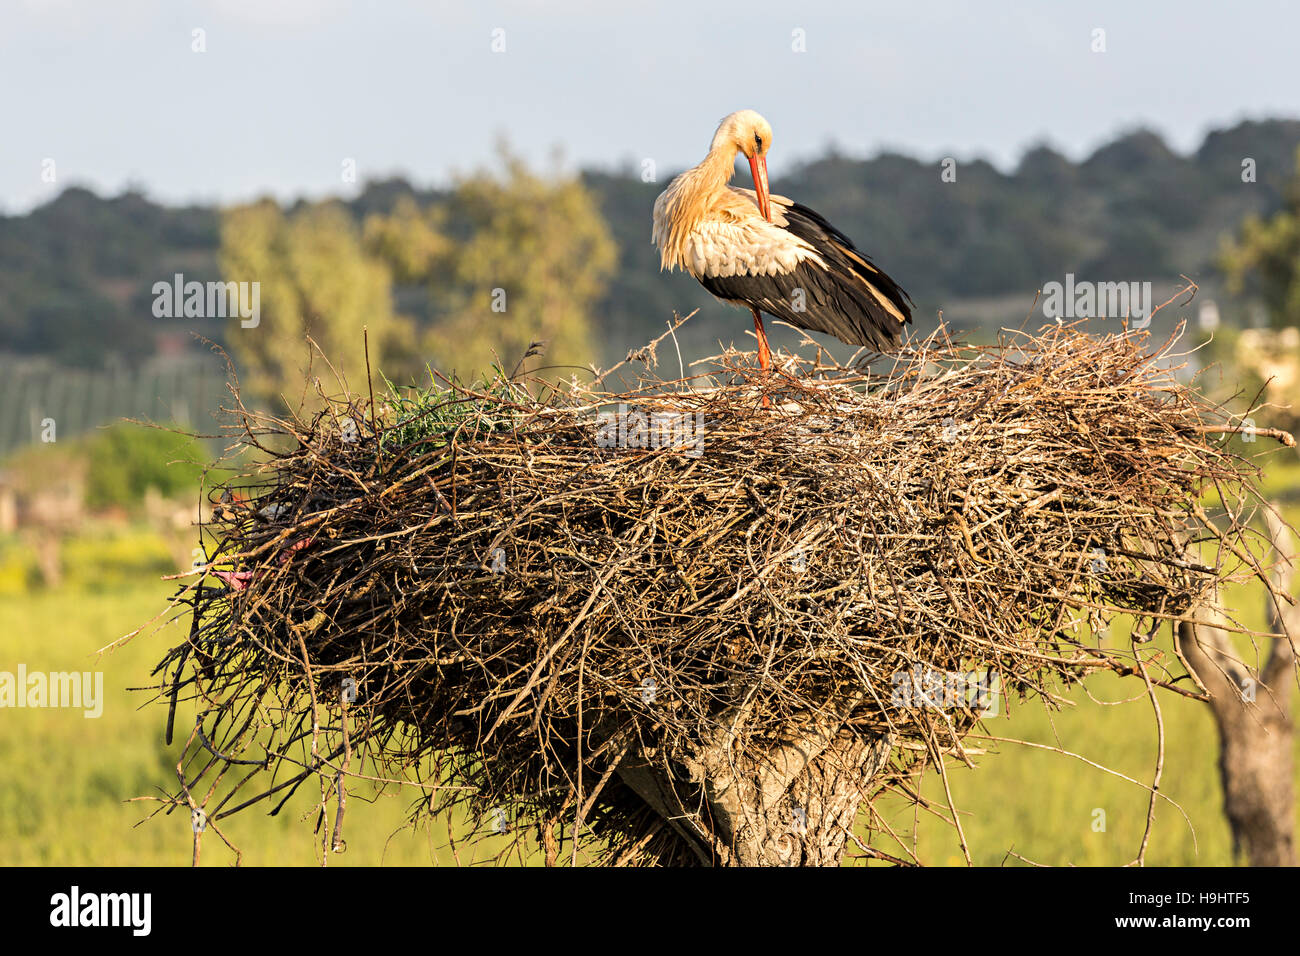 White stork Ciconia ciconia preening on nest, Algarve, Portugal, Europe - Stock Image